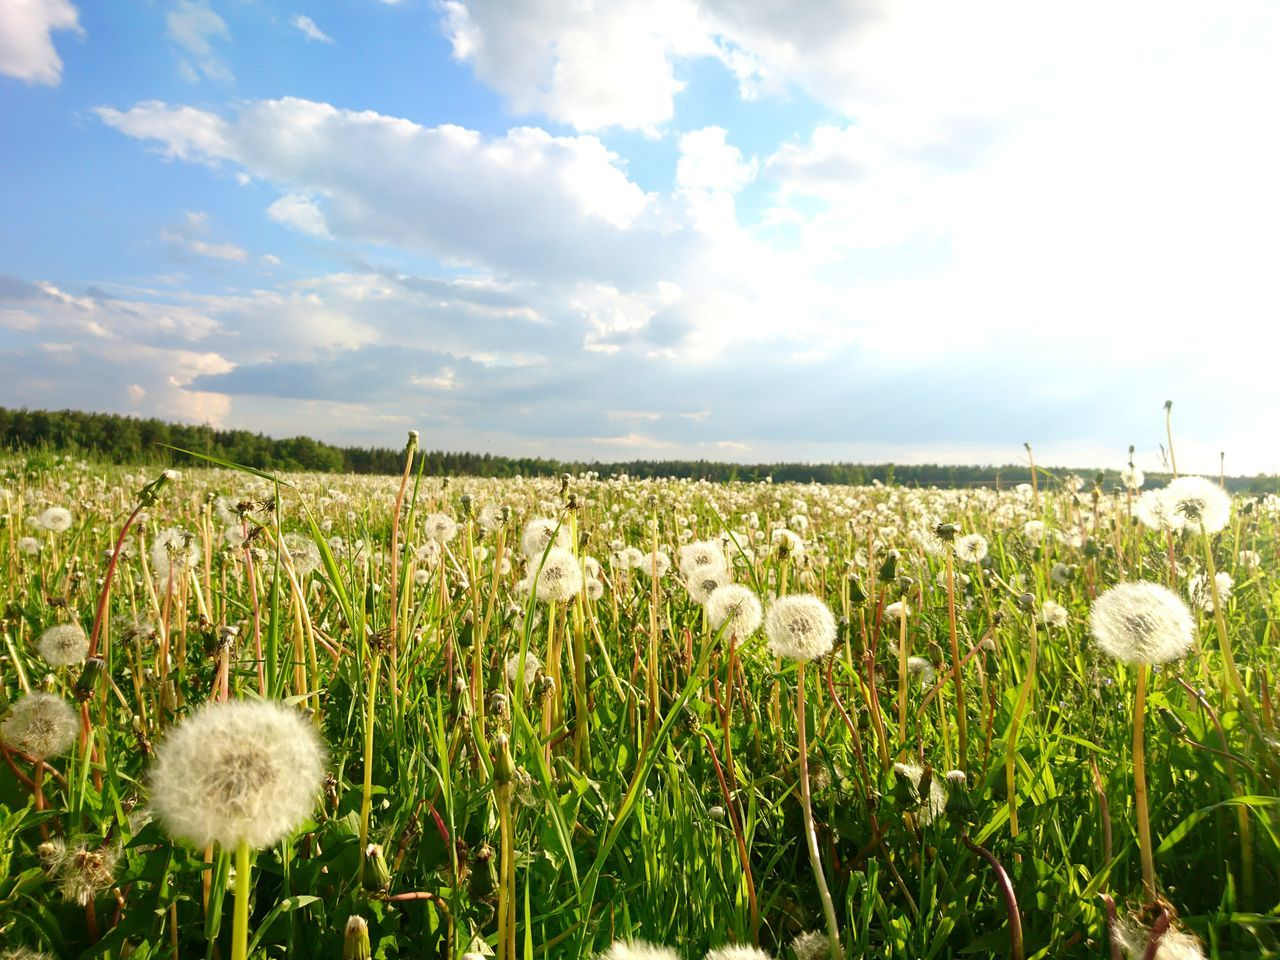 nature, growth, field, plant, beauty in nature, sky, tranquility, flower, day, outdoors, tranquil scene, no people, cloud - sky, agriculture, landscape, rural scene, grass, scenics, fragility, close-up, flower head, freshness